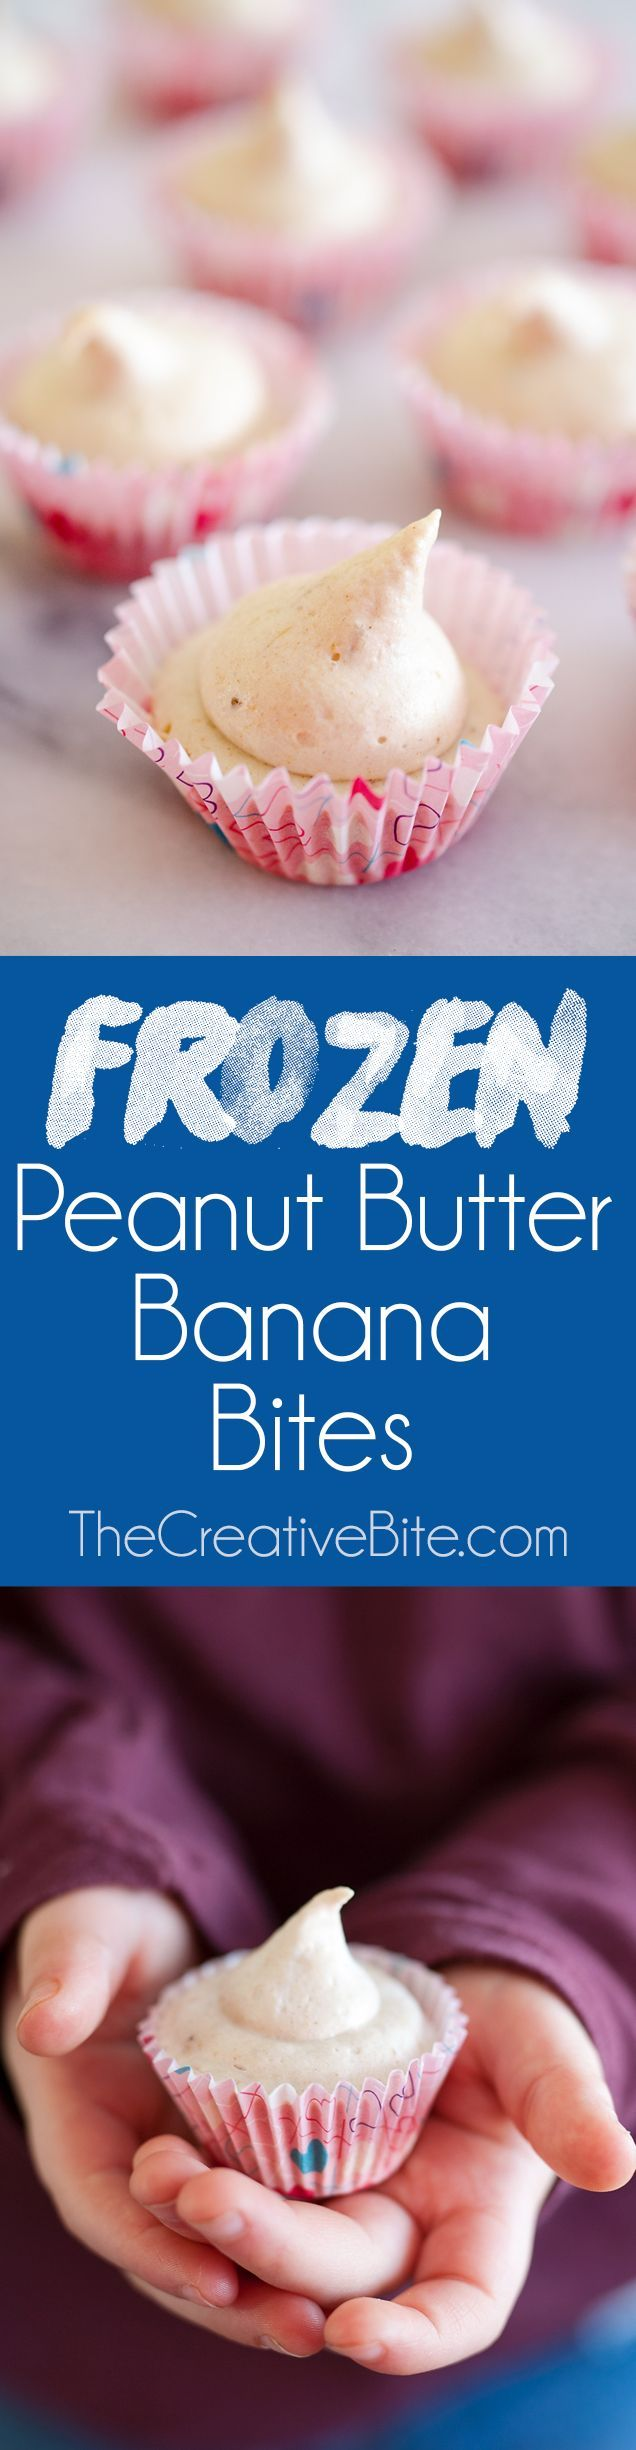 Frozen Peanut Butter Banana Bites are a healthy treat for kids and adults with a light and creamy texture that is sure to satisfy your sweet tooth! #Frozen #Dessert #Banana